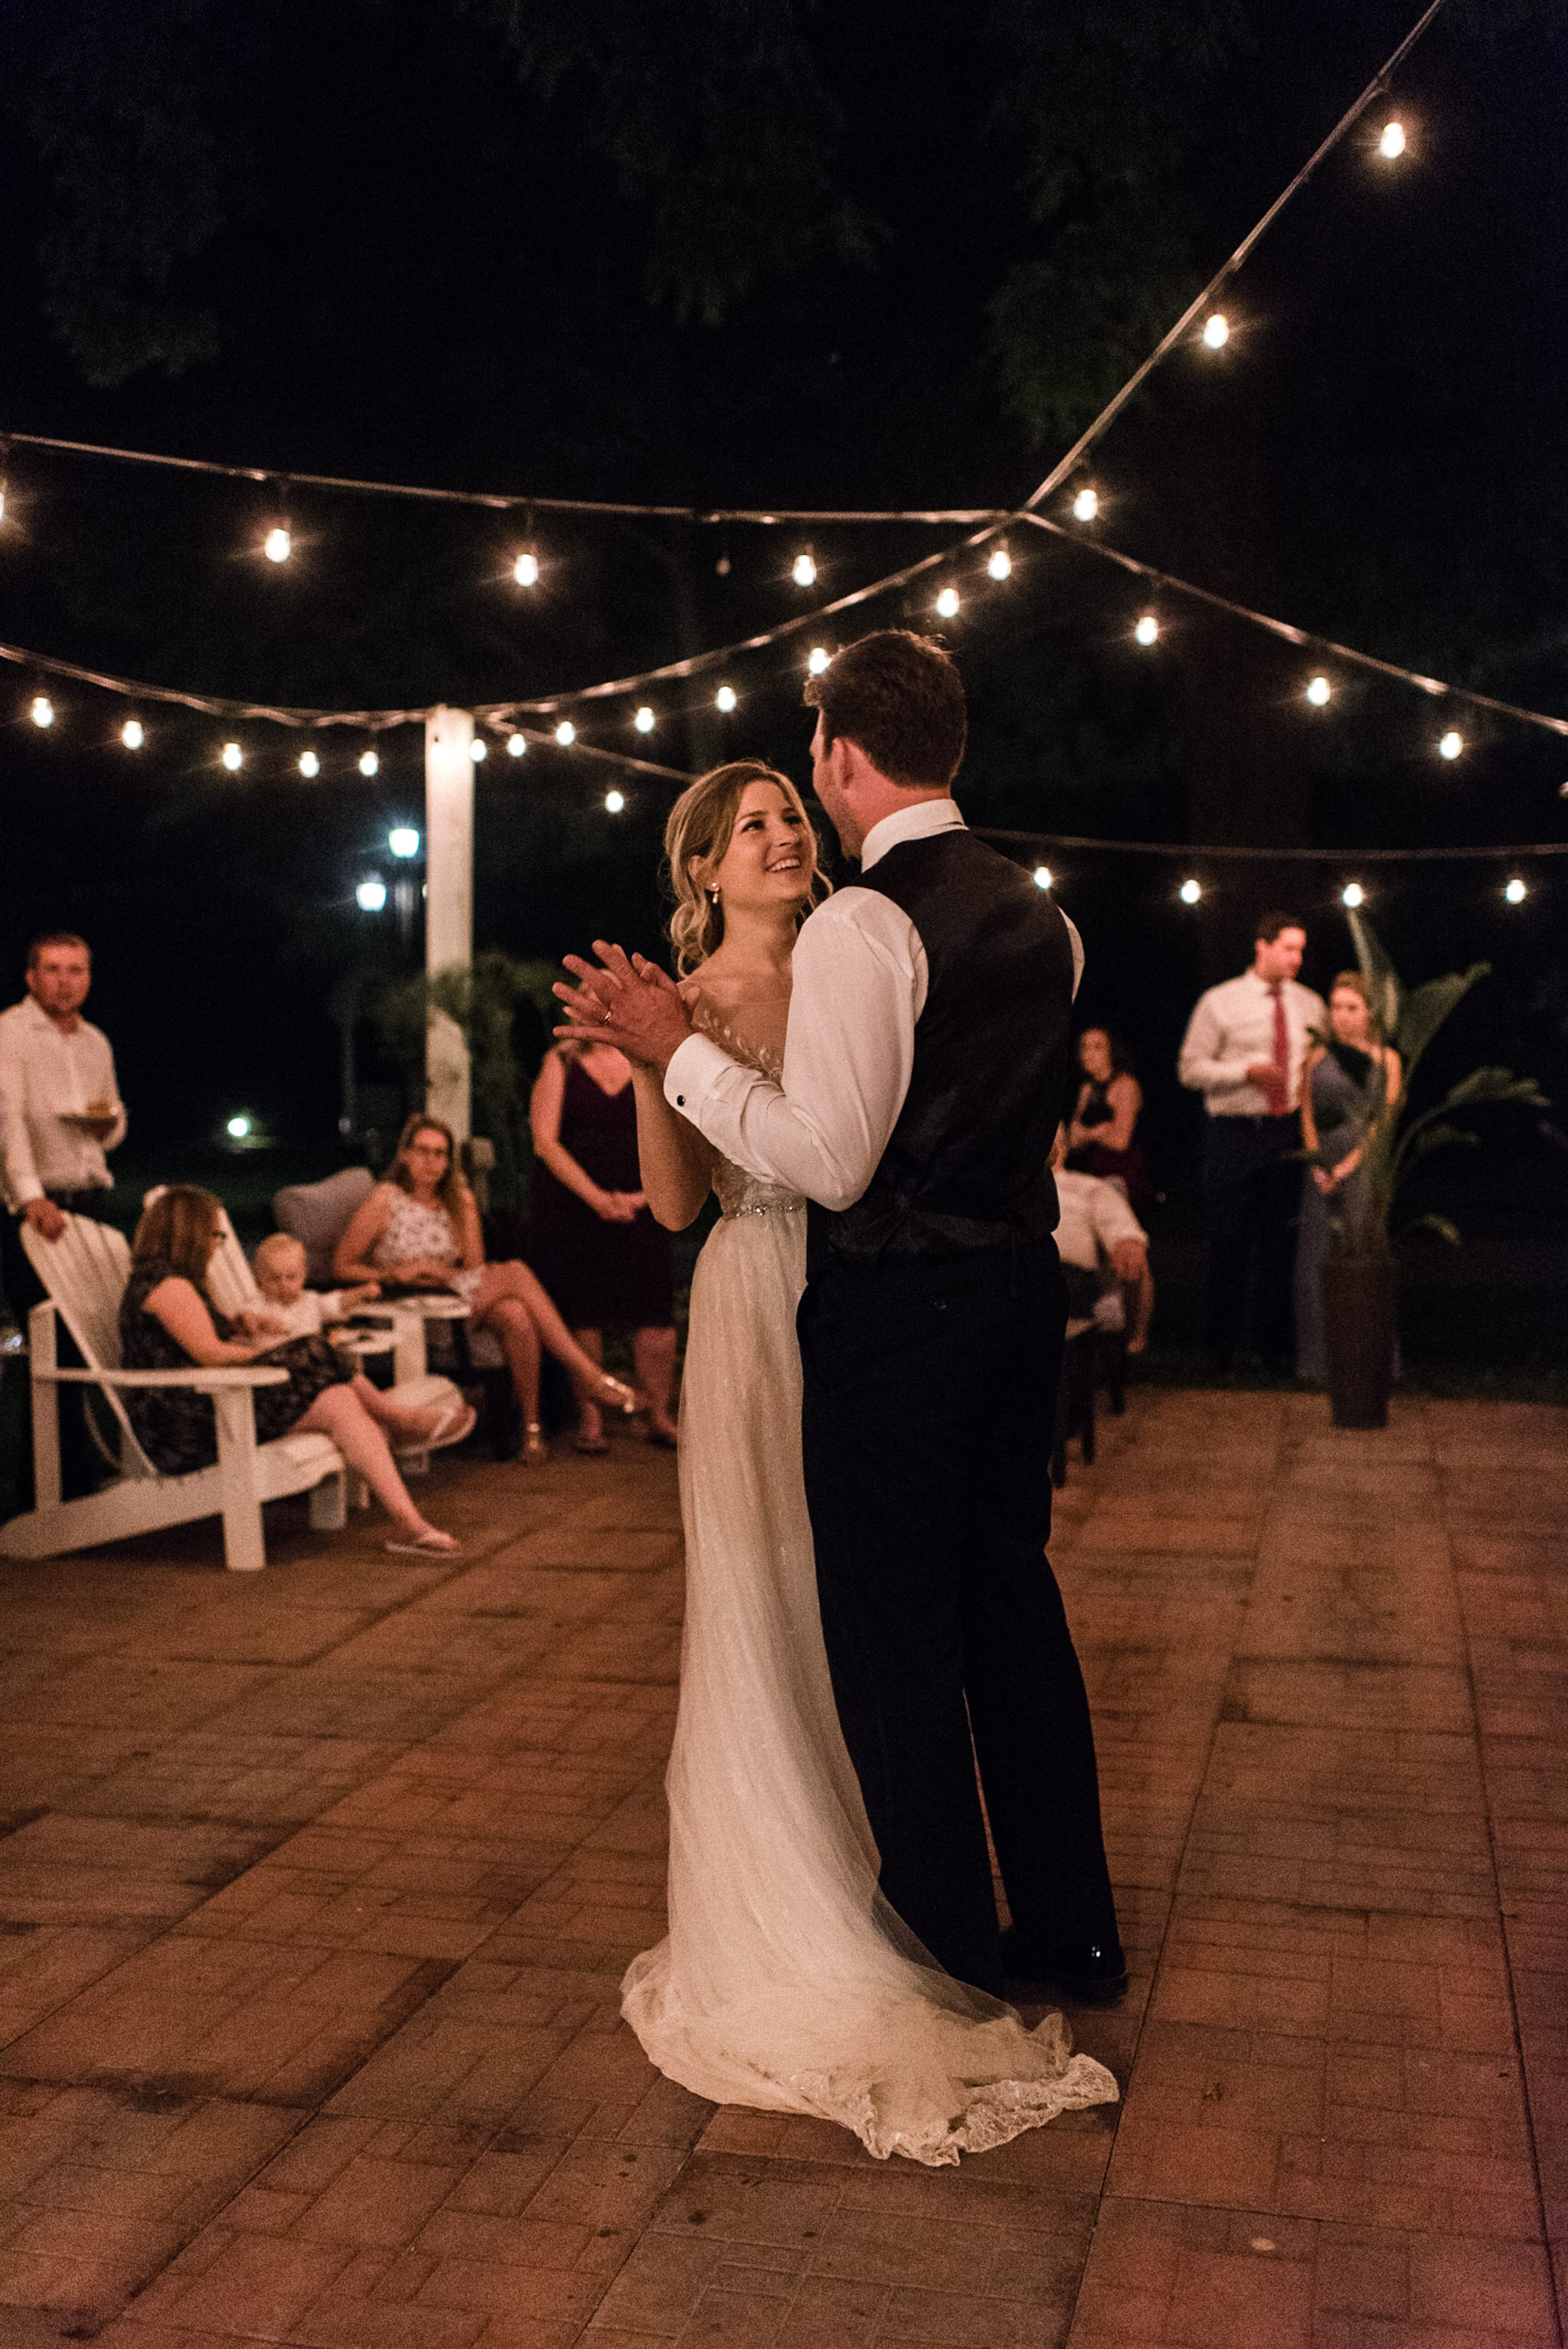 214-penryn-park-first-dance-string-lights-outdoor-wedding.jpg